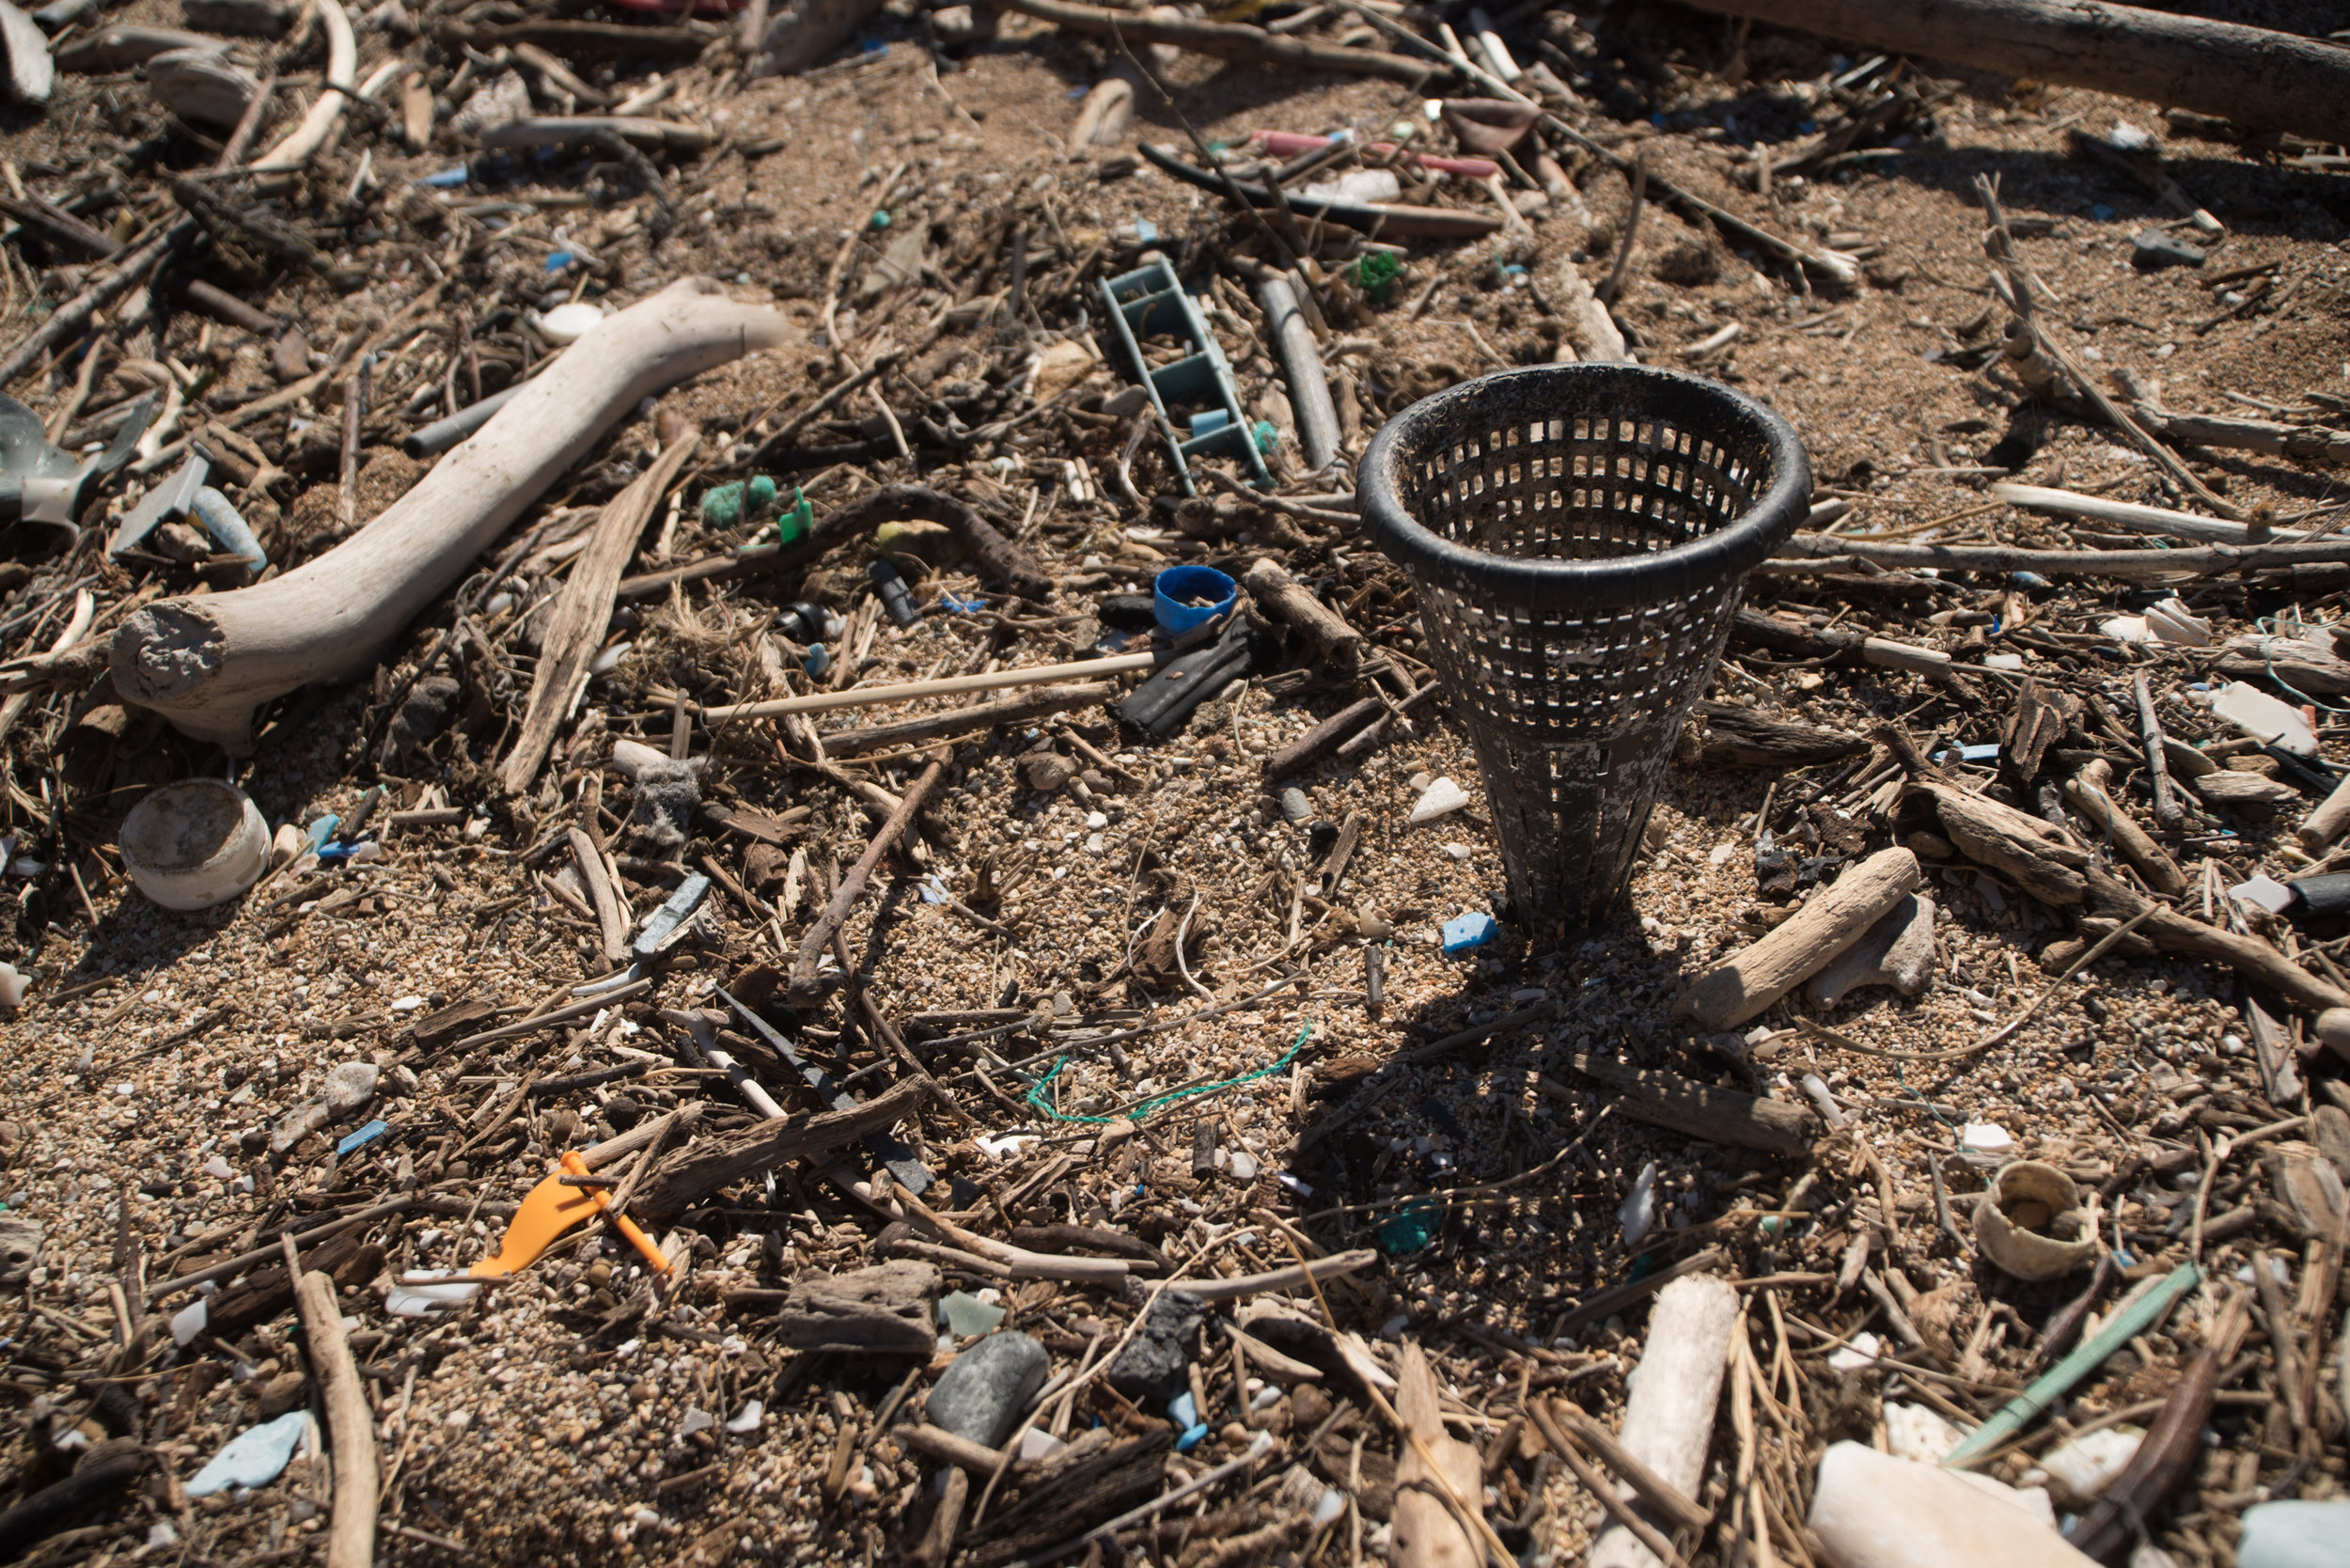 Plastic debris littering the beaches of Lana'i, Hawai'i